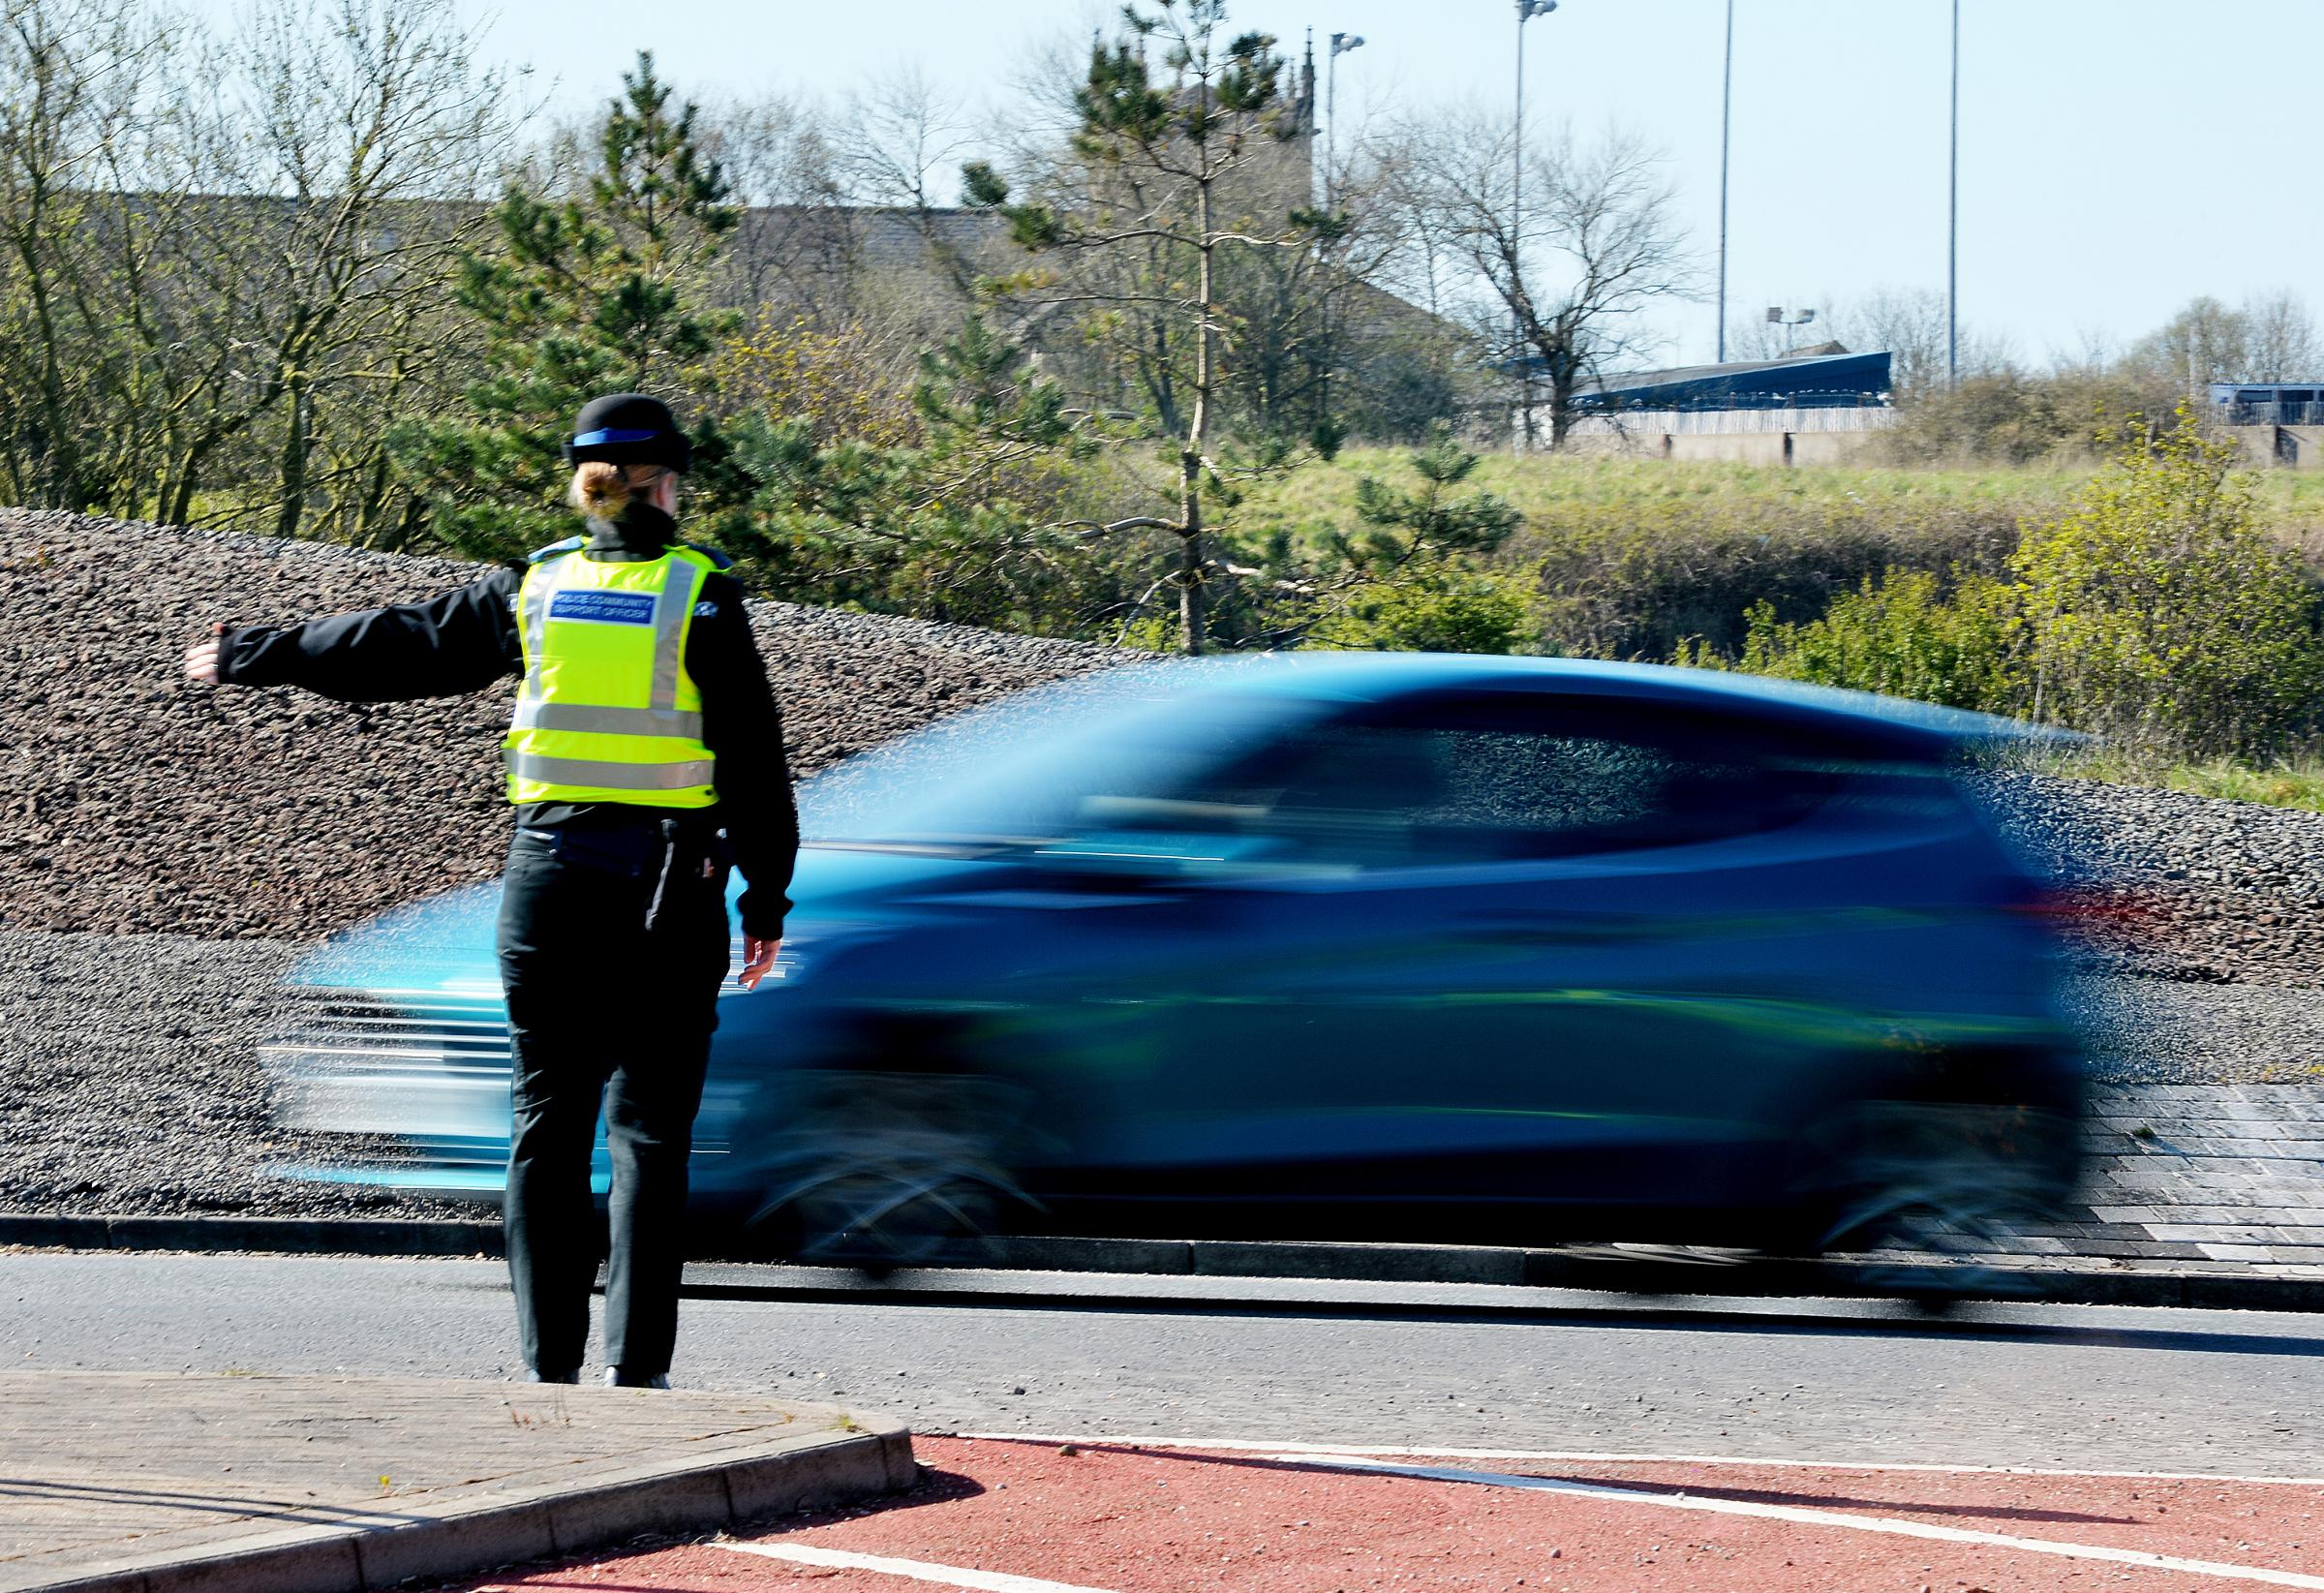 Almost 100 drink and drug drivers arrested by North Yorkshire Police